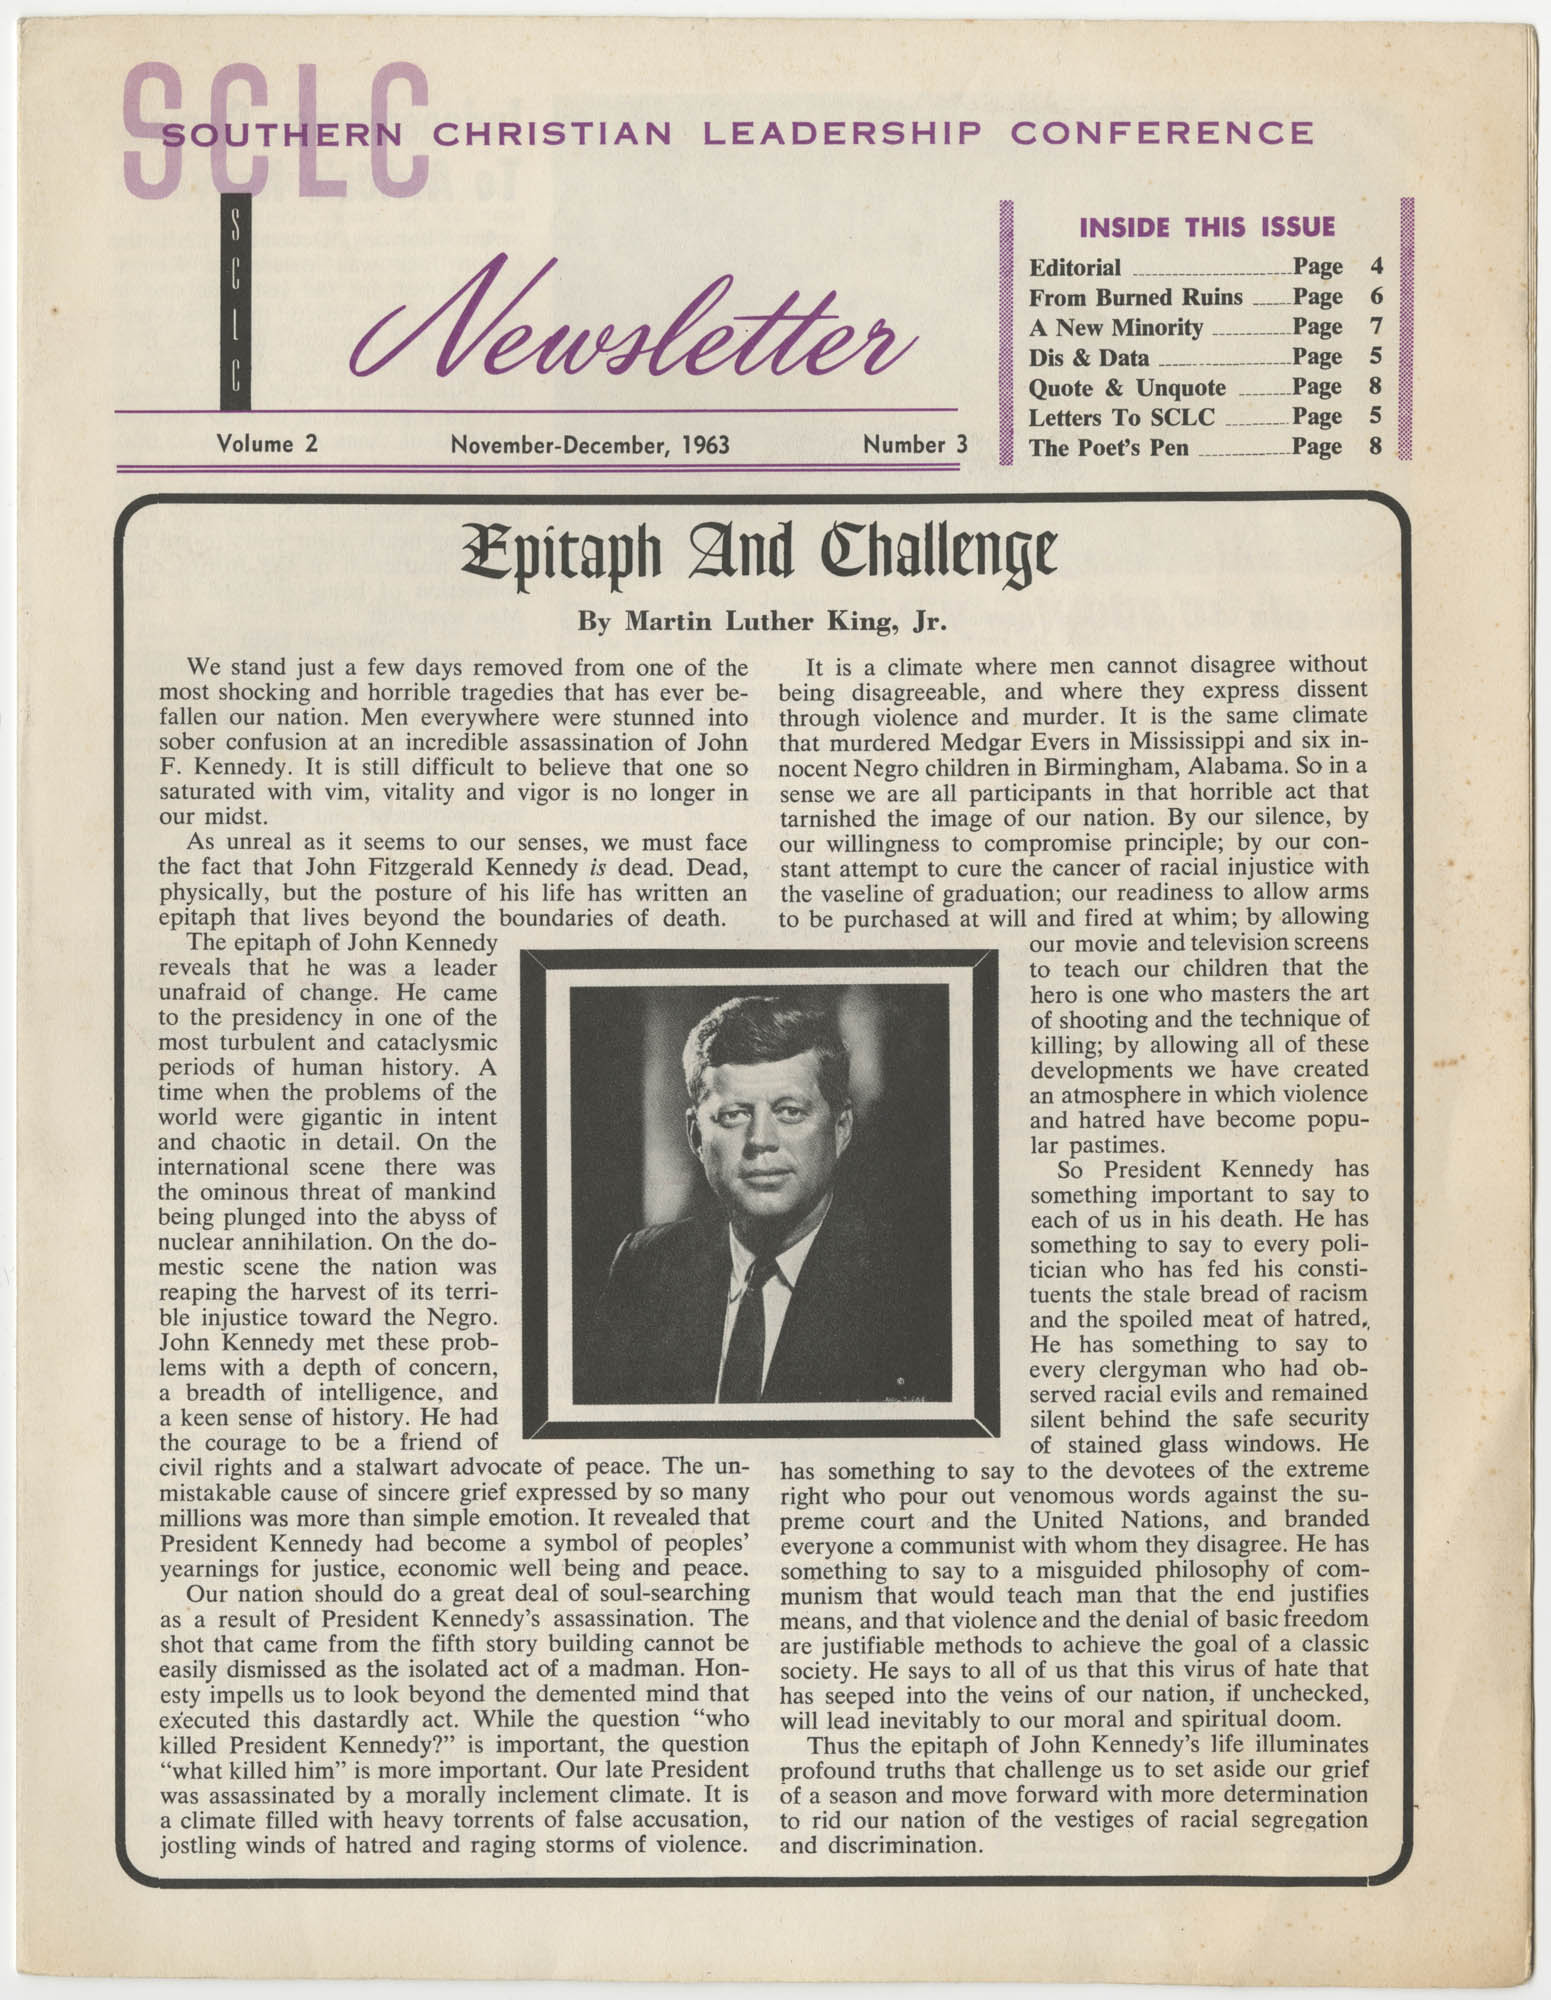 Southern Christian Leadership Conference Newsletter, Volume 2, Number 3, November-December, 1963